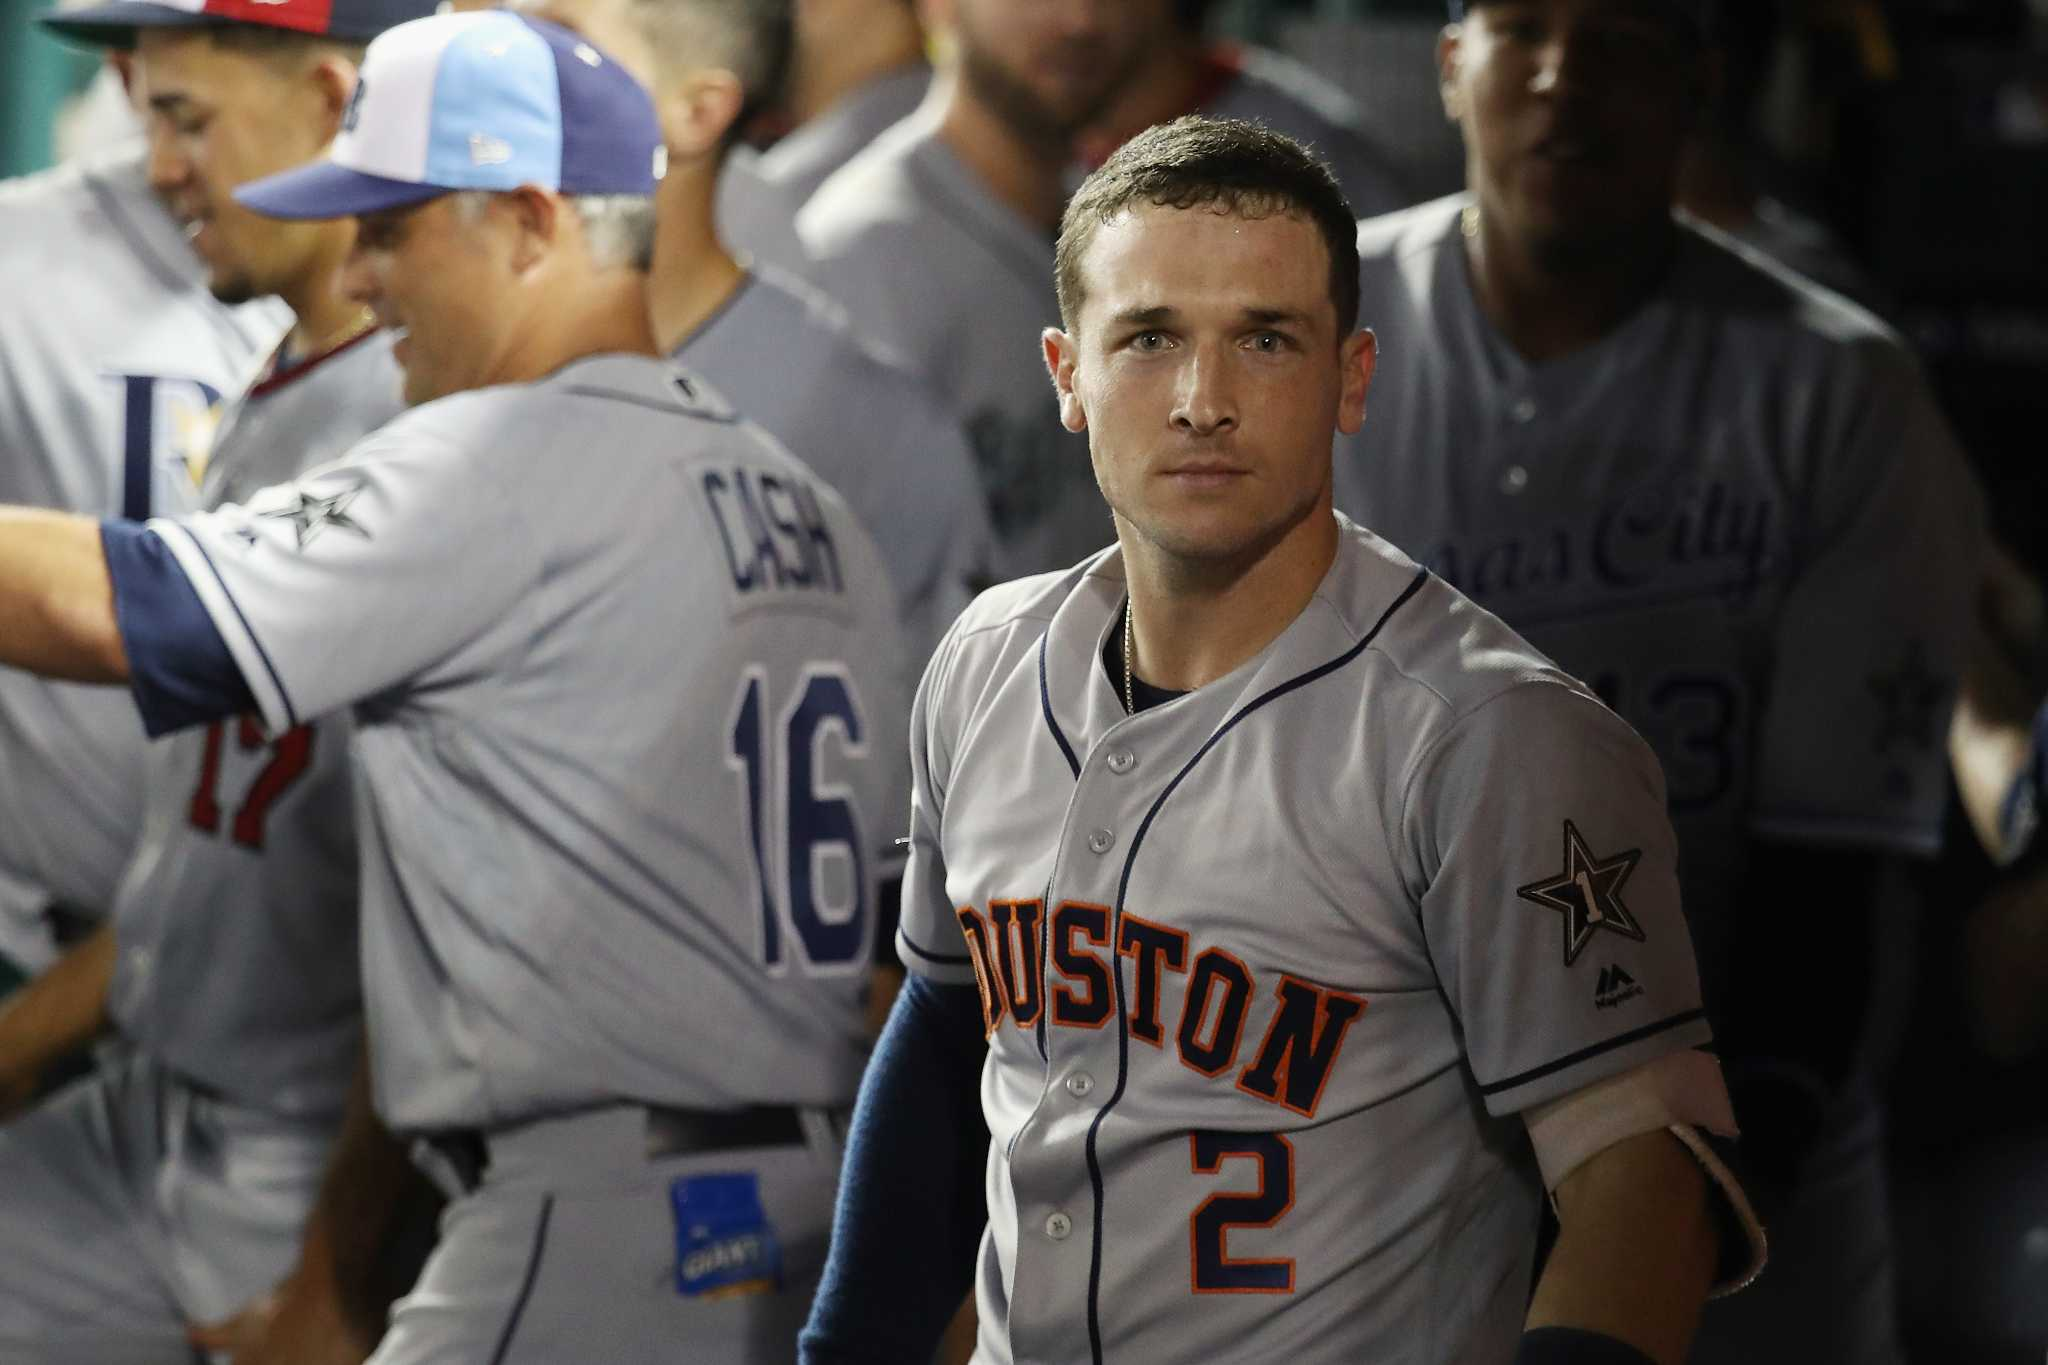 Astros Alex Bregman Obsessed In Pursuit Of Baseball Perfection Houstonchronicle Com